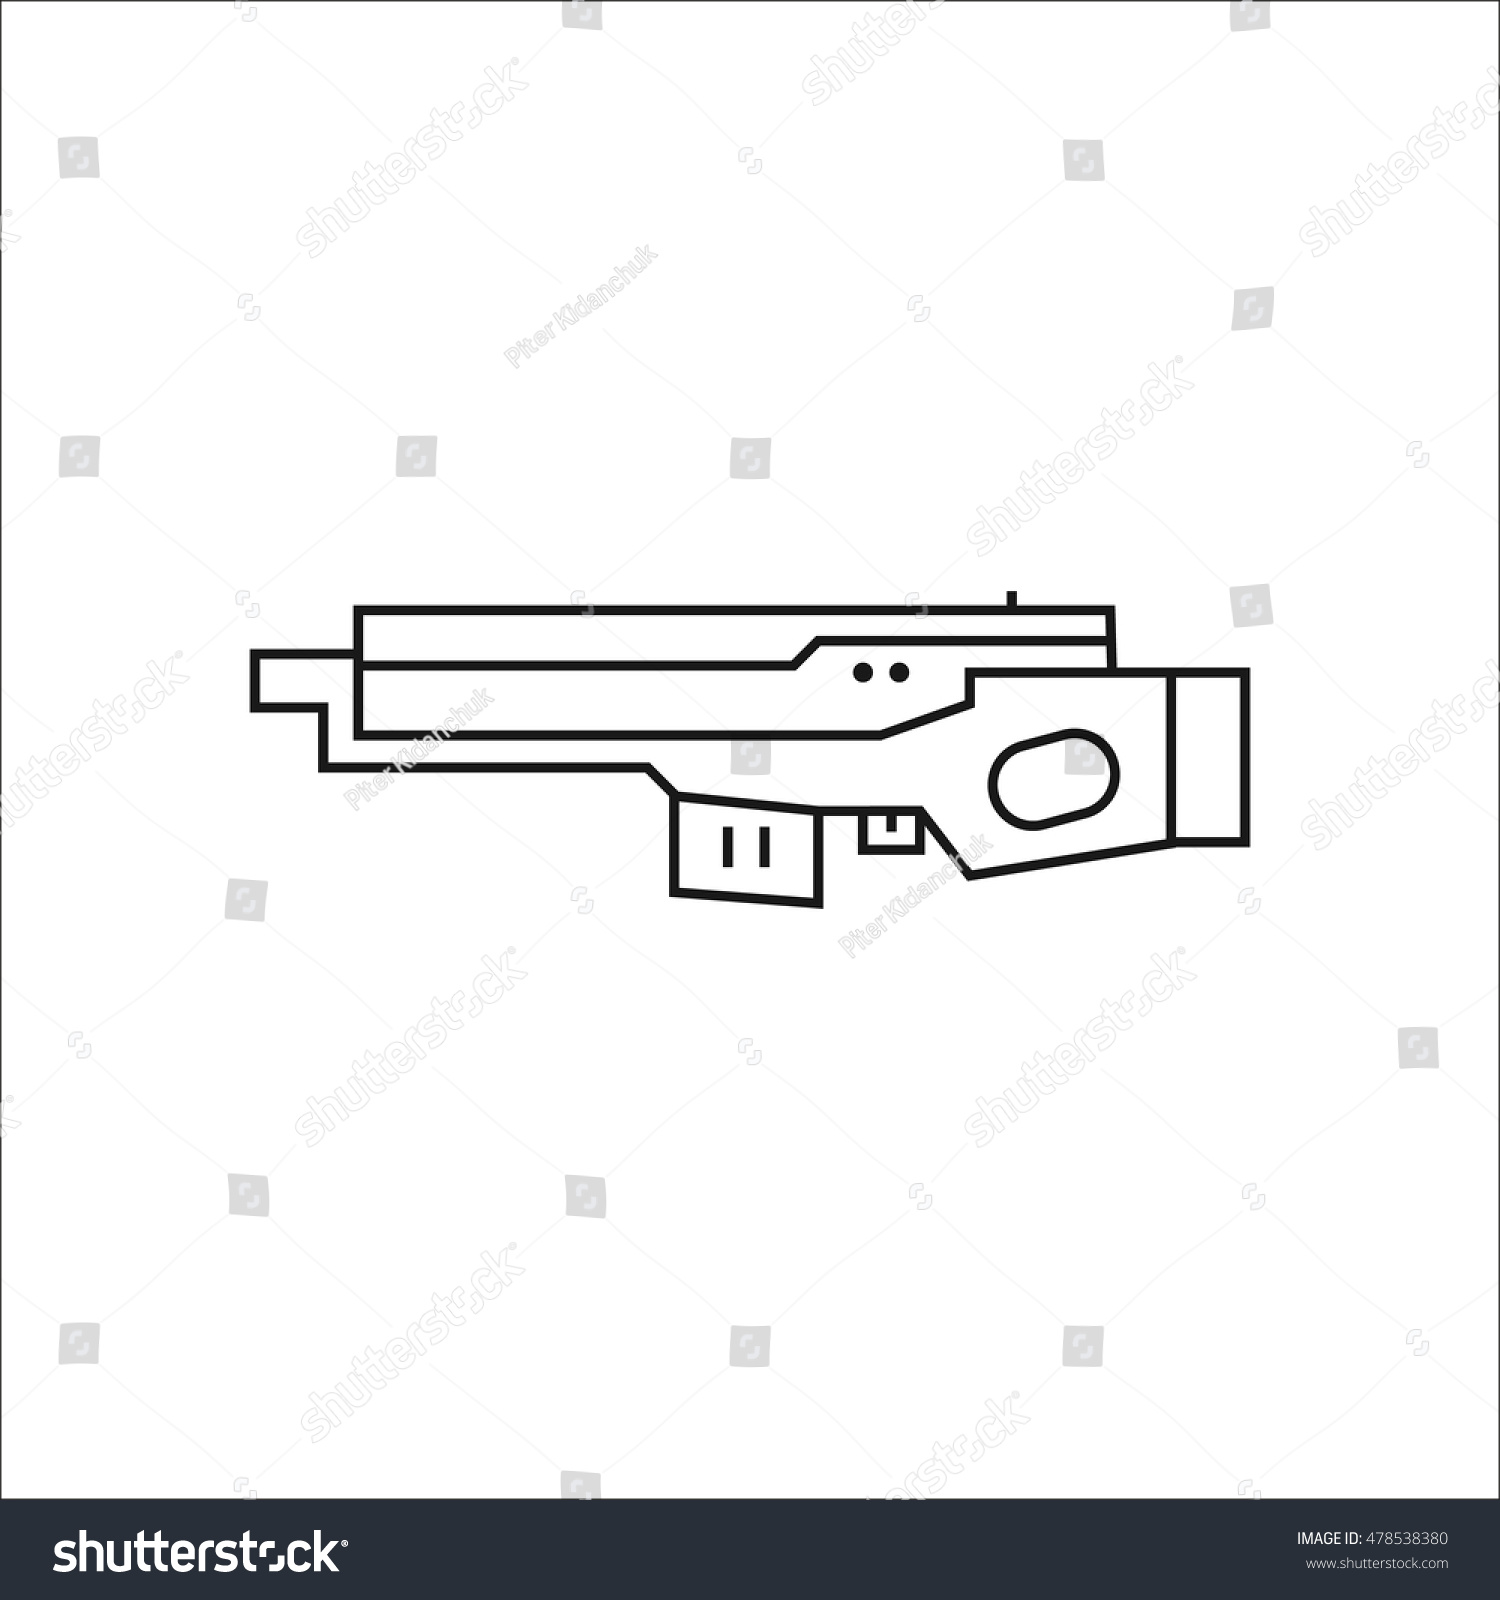 Futuristic large laser gun rifle symbol stock vector 478538380 futuristic large laser gun rifle symbol sign one line icon on background biocorpaavc Images